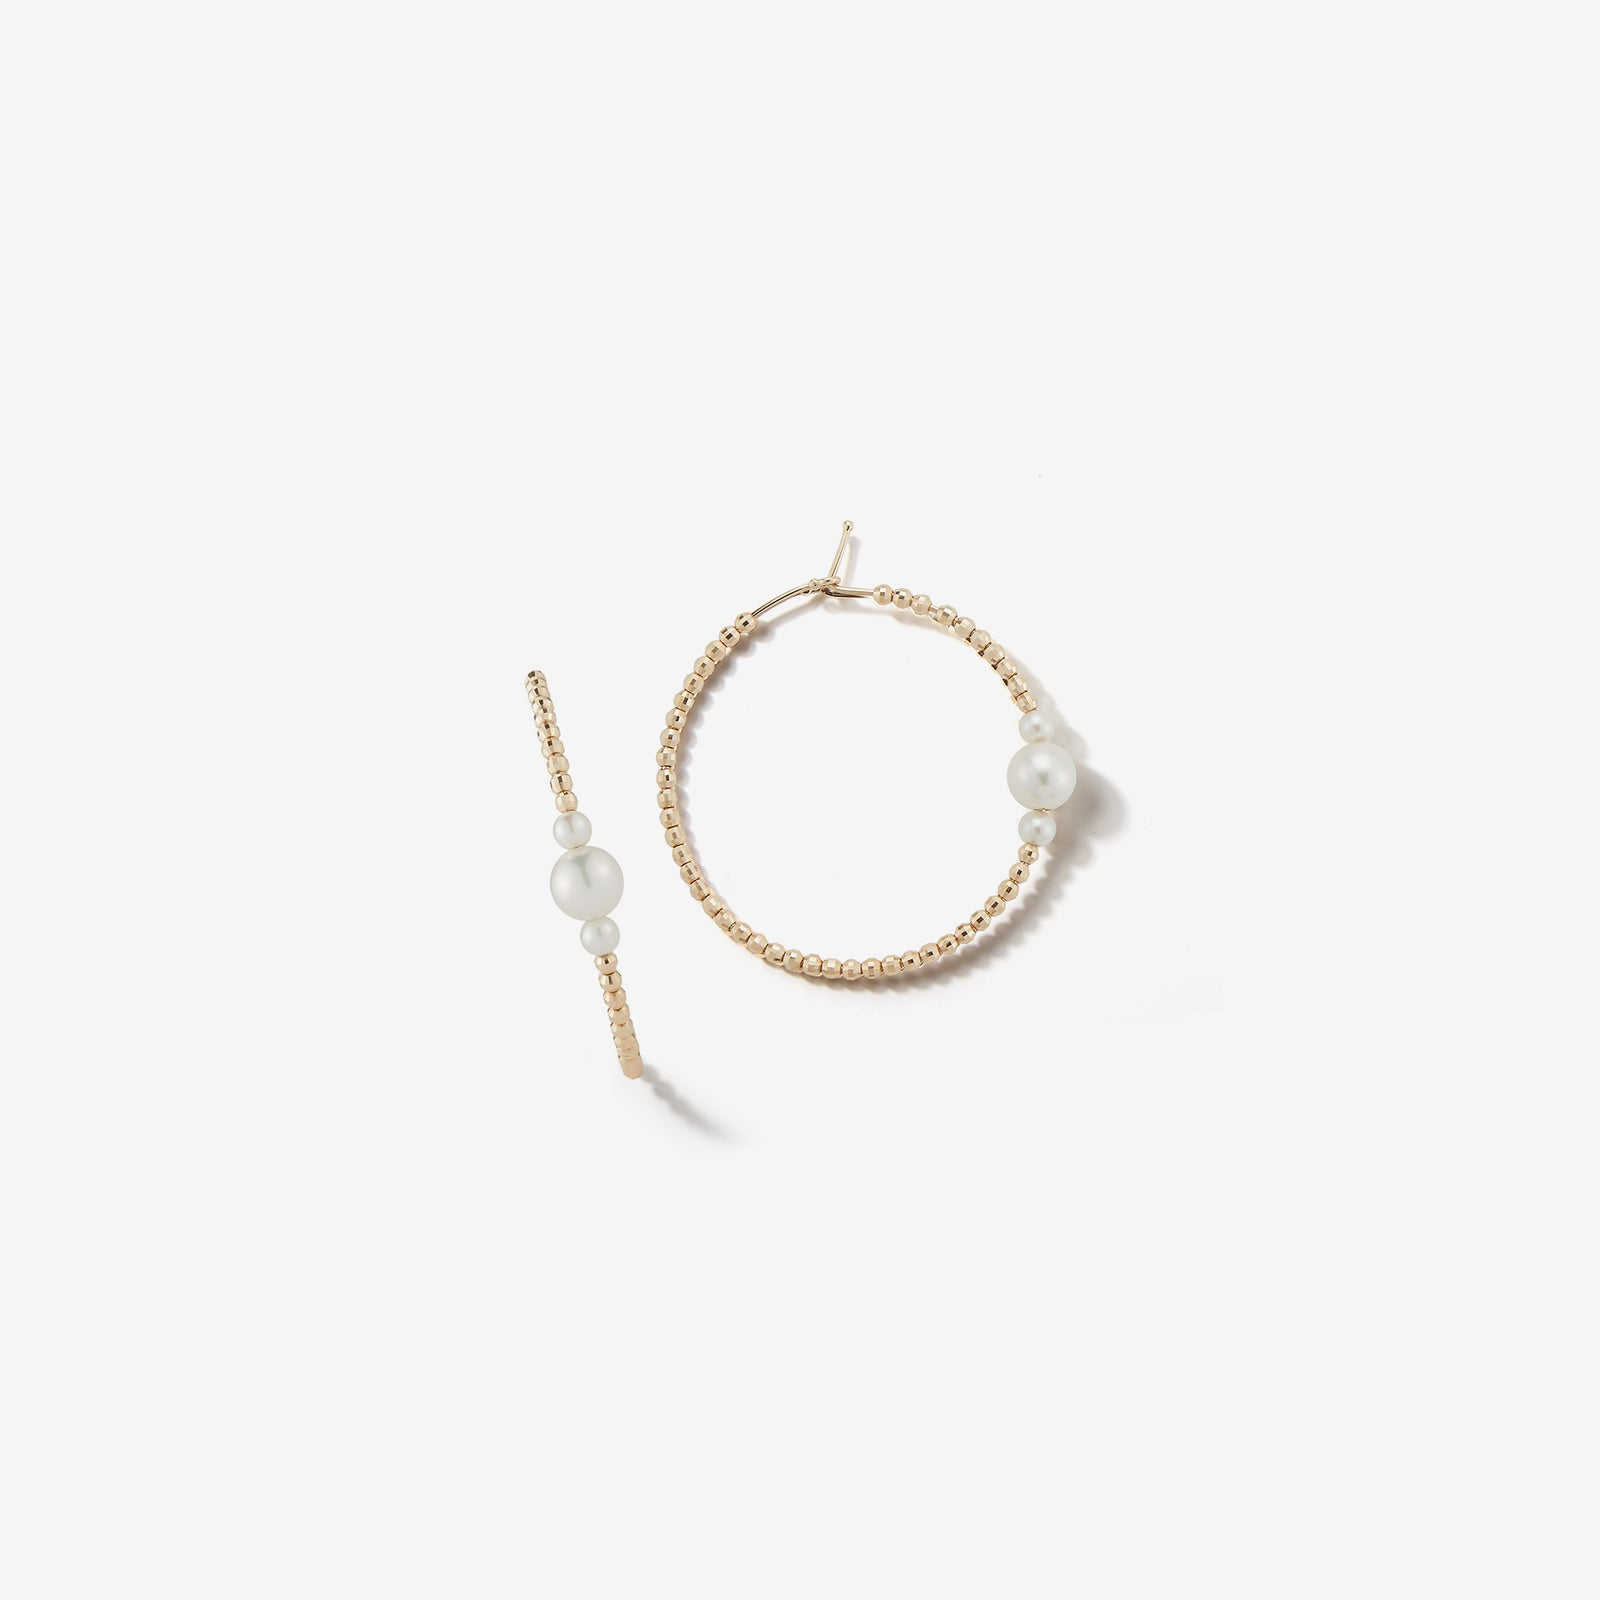 Sea of Beauty Collection.  Medium Three Pearls and Gold Bead Hoop Earrings  SBE234